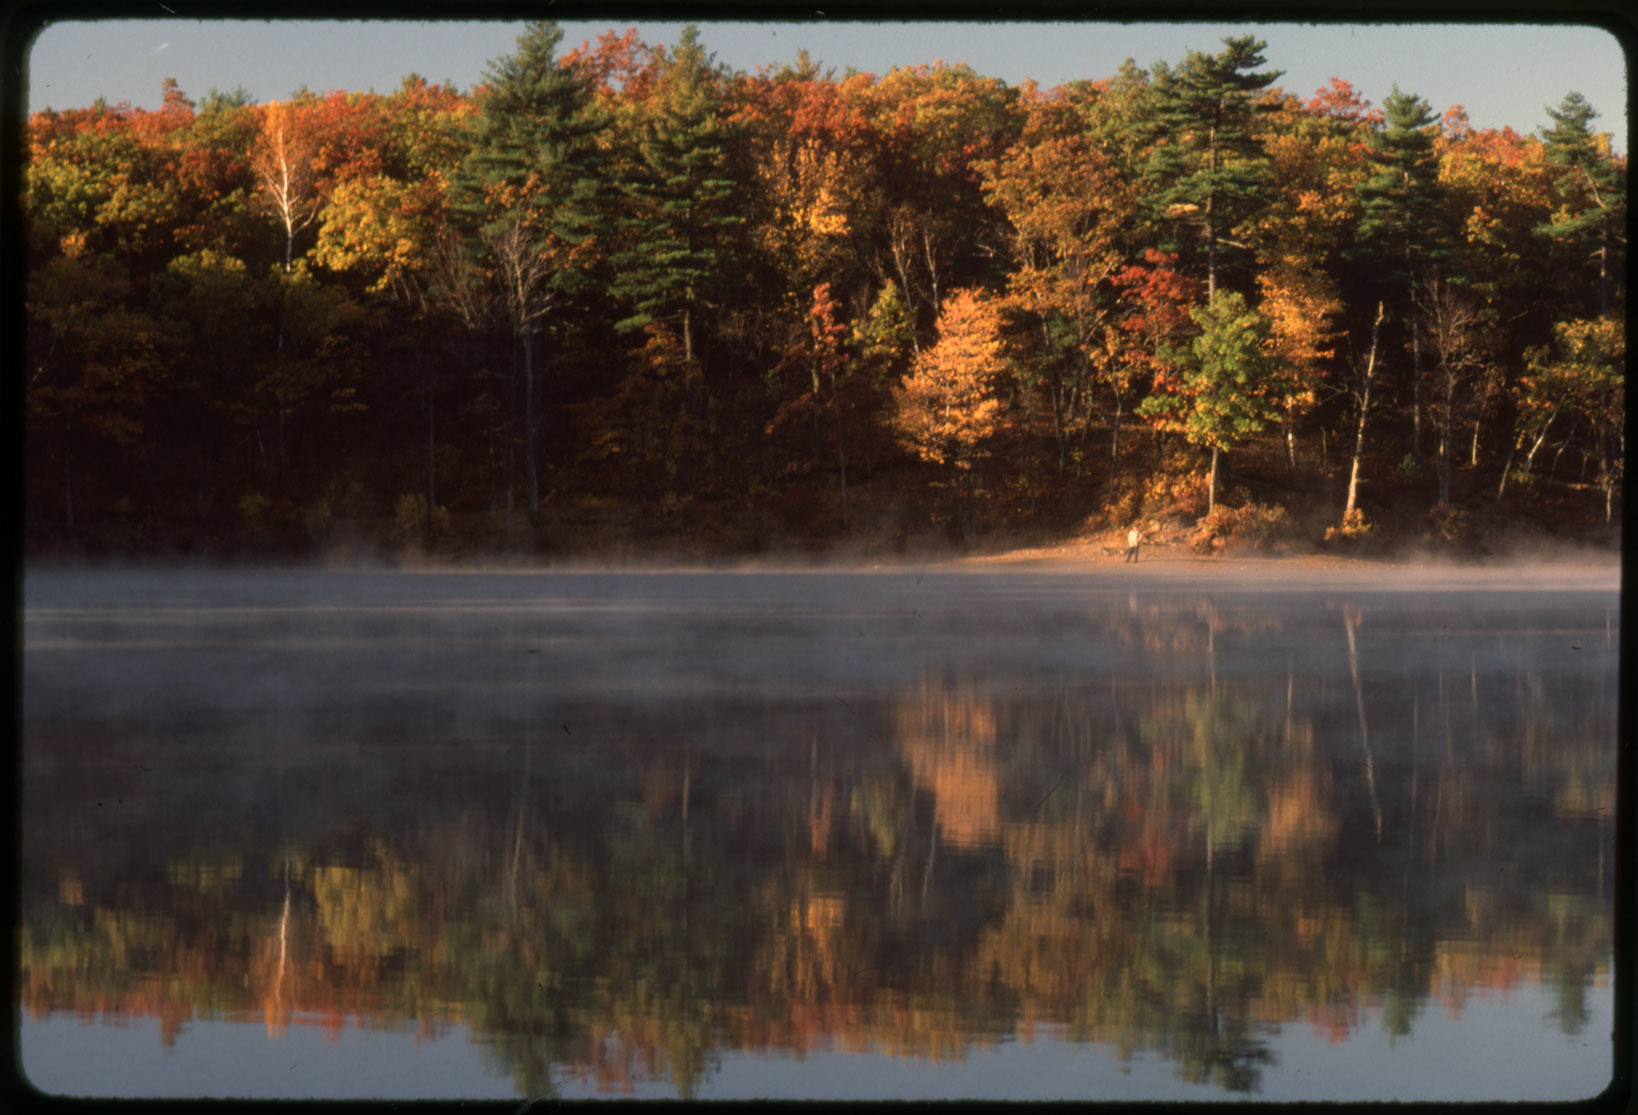 Depiction of Walden Pond, Oct. 1985